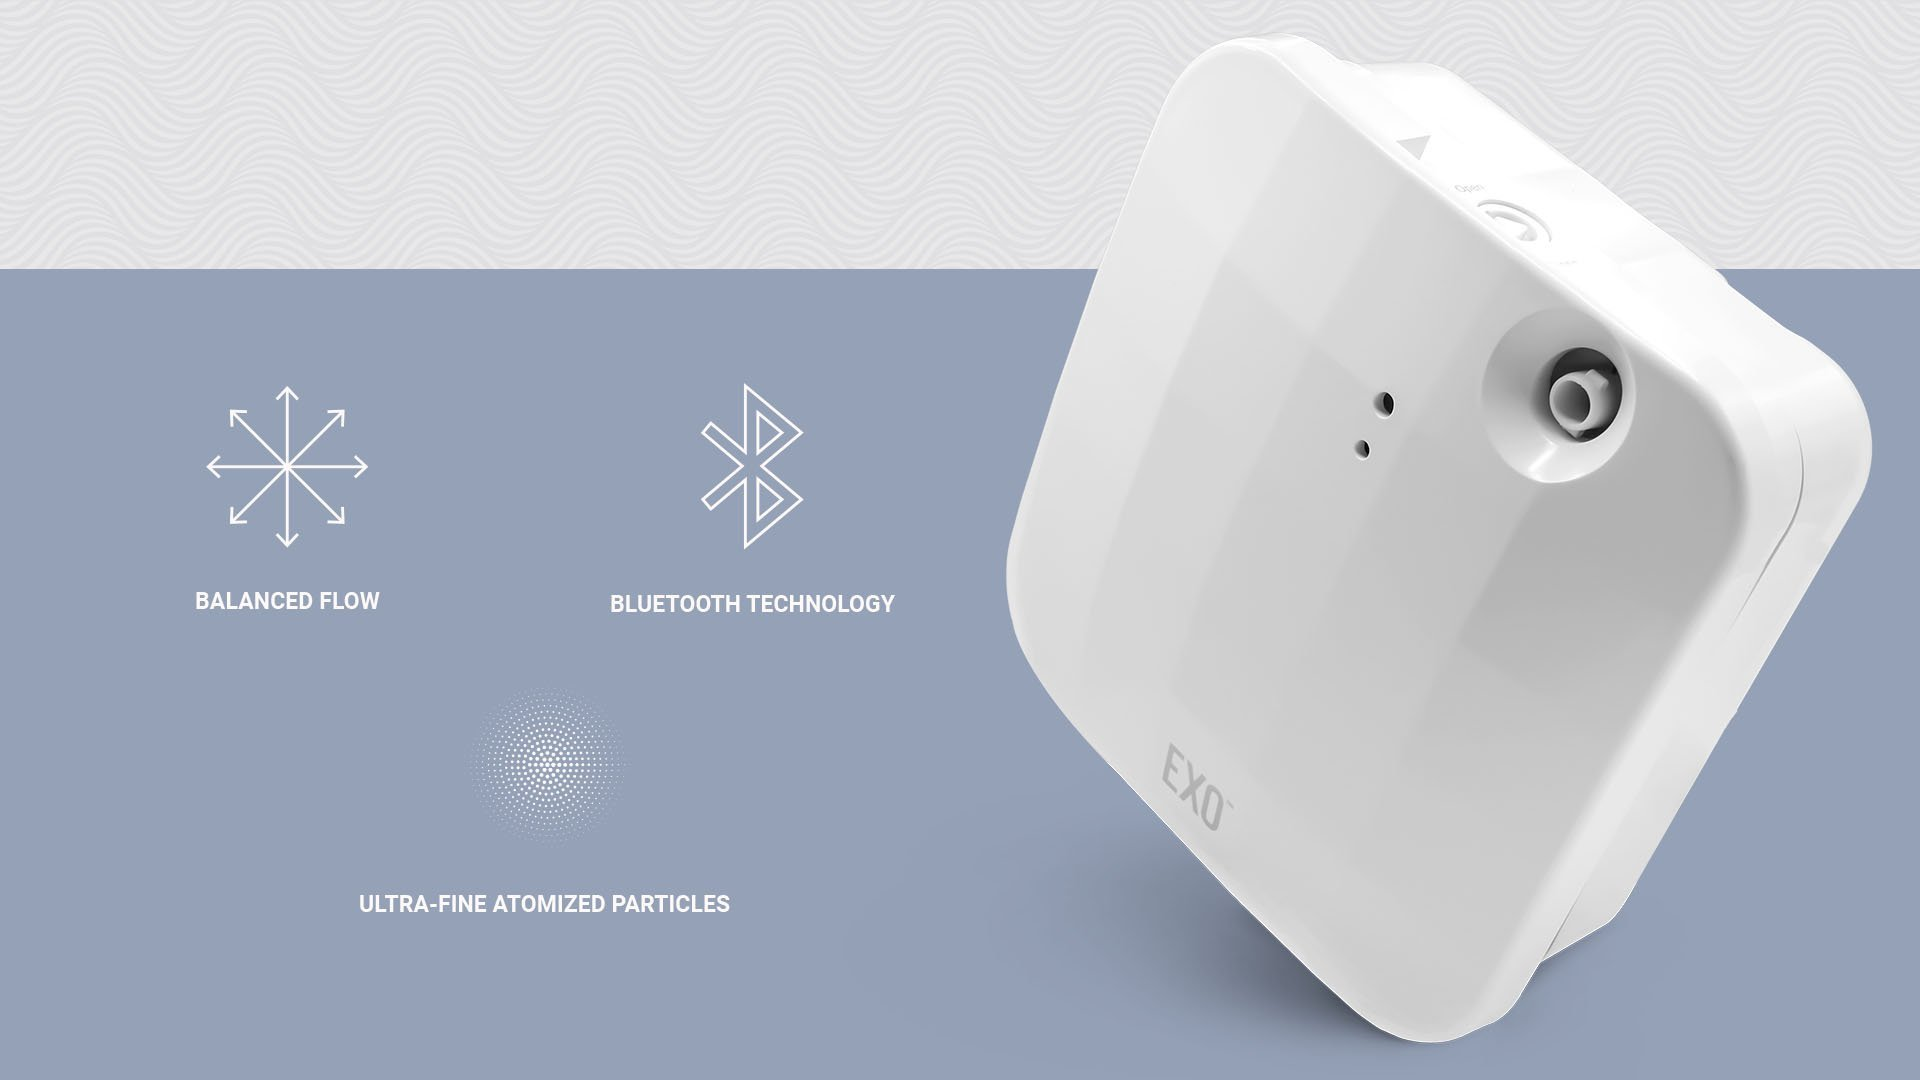 Exo Smart Home Diffuser Features Image